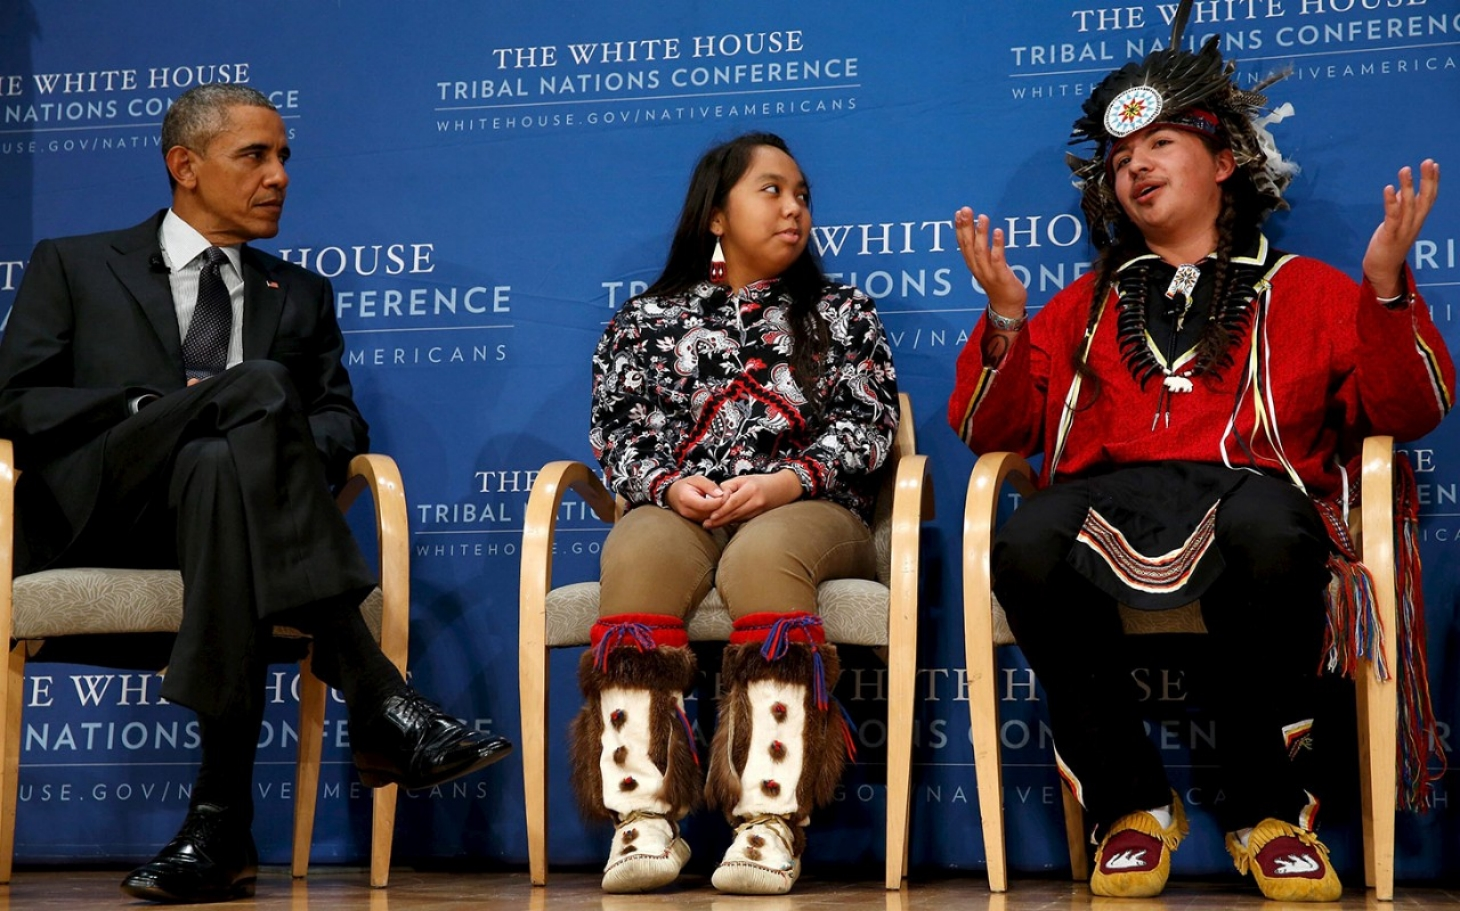 White House Fact Sheet: The 8th Annual White House Tribal Nations Conference